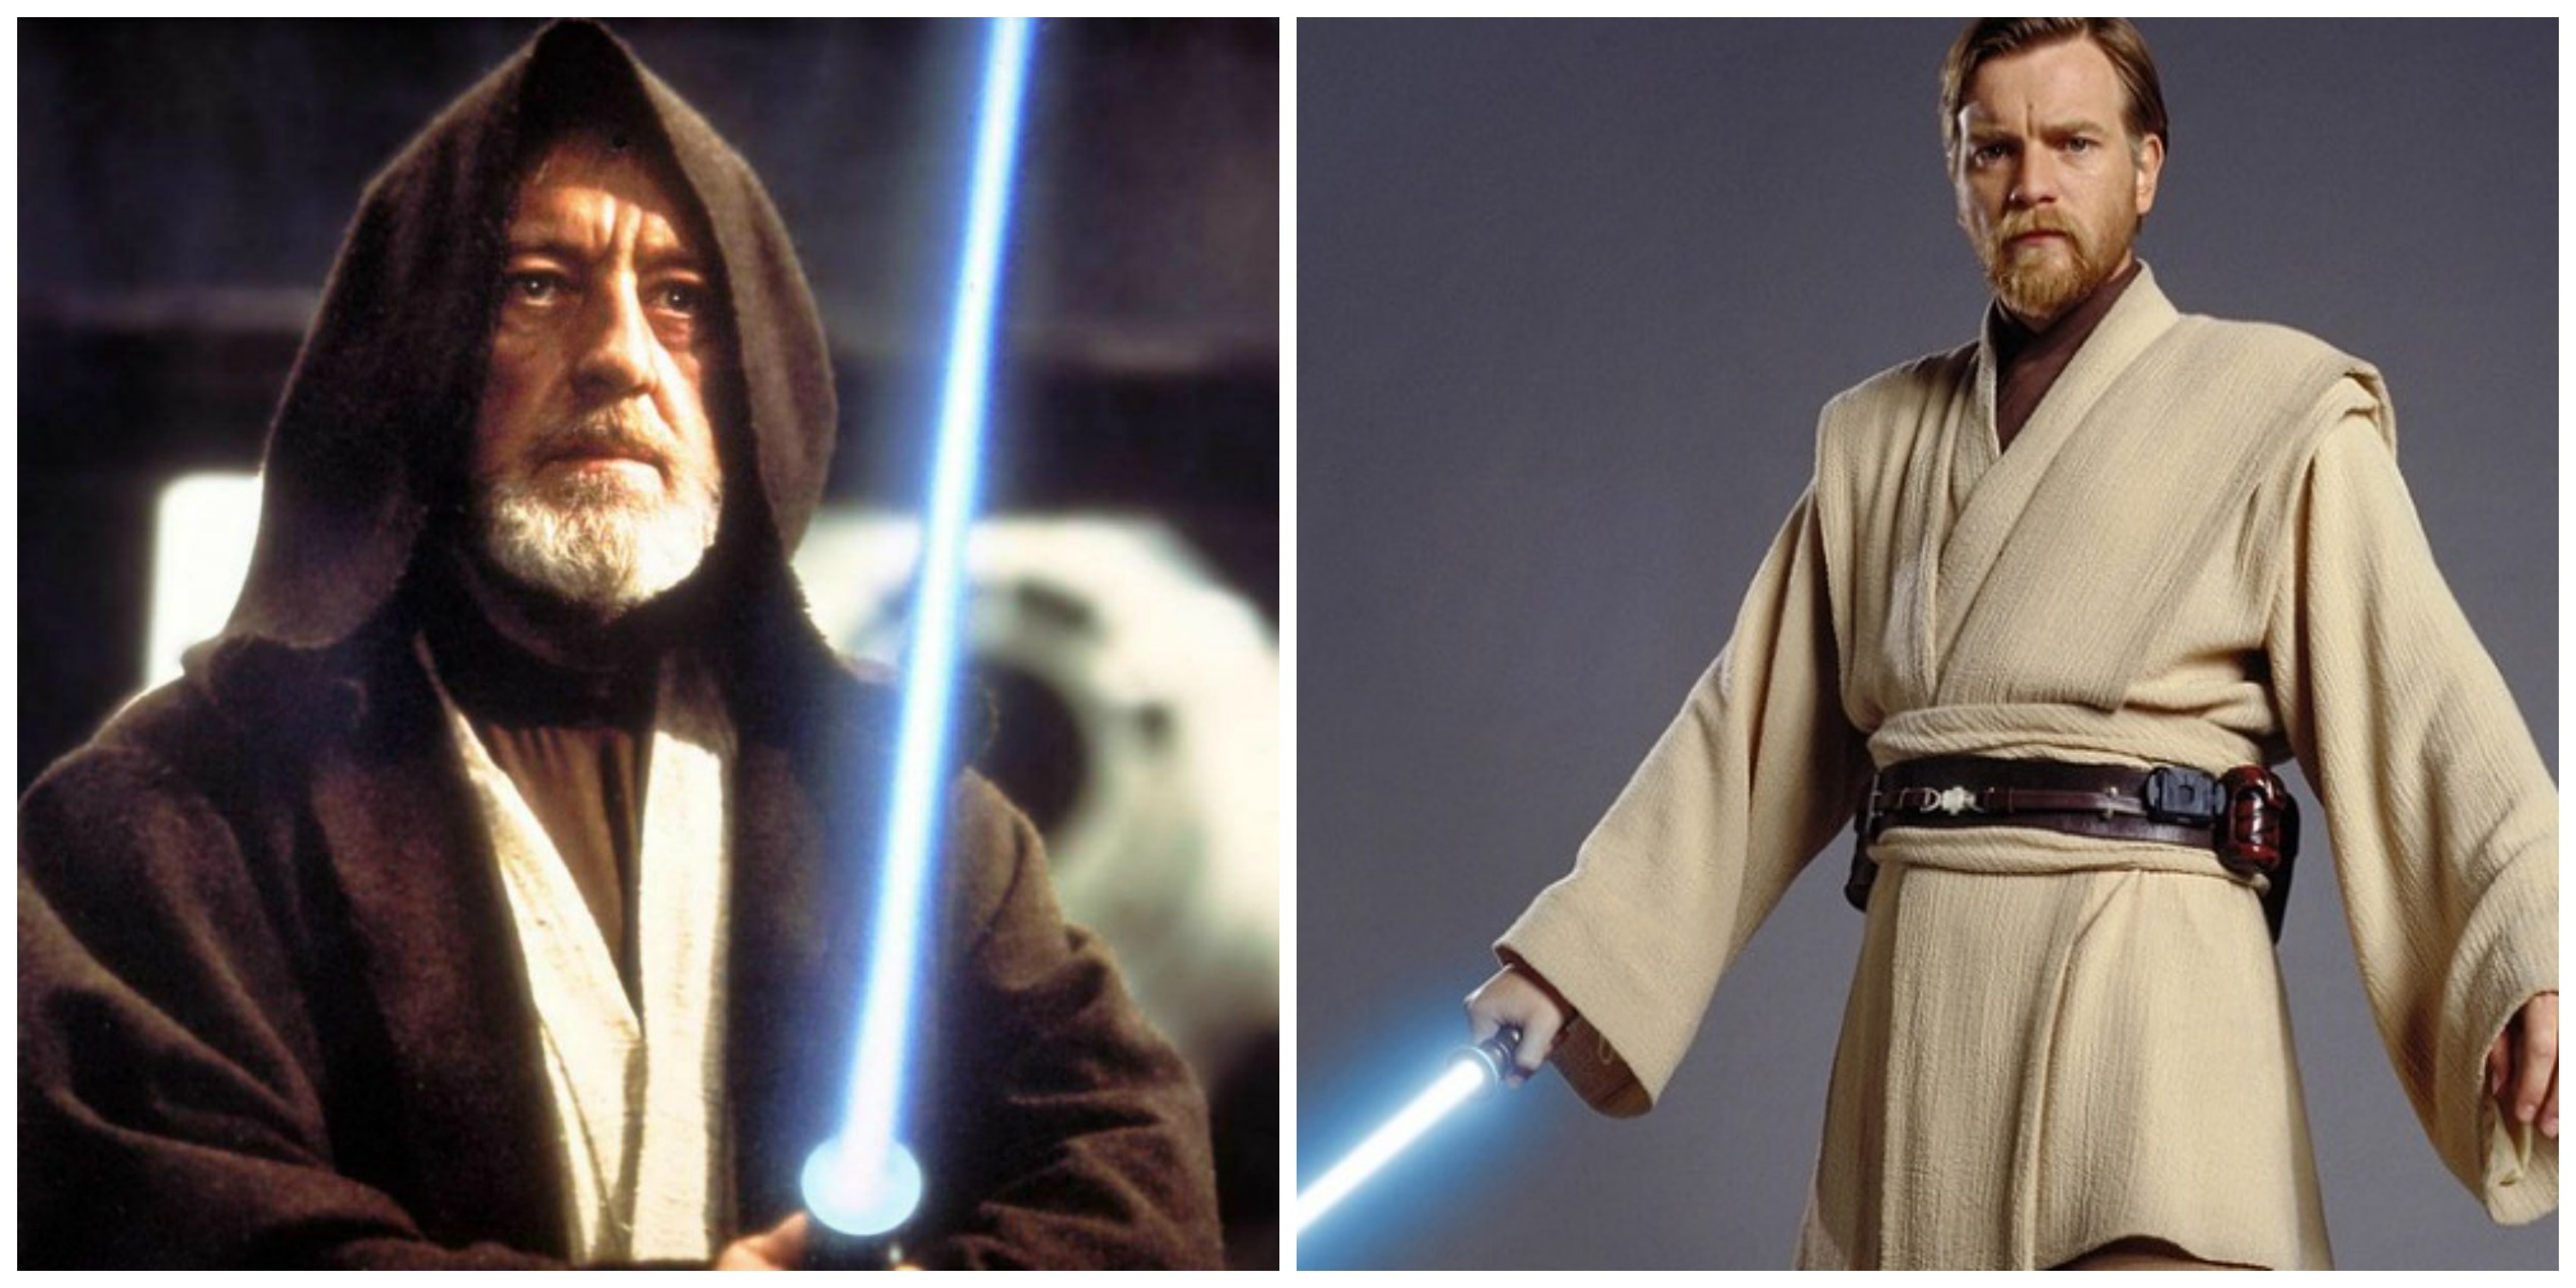 Obi-Wan Kenobi standalone Star Wars film may be on the way